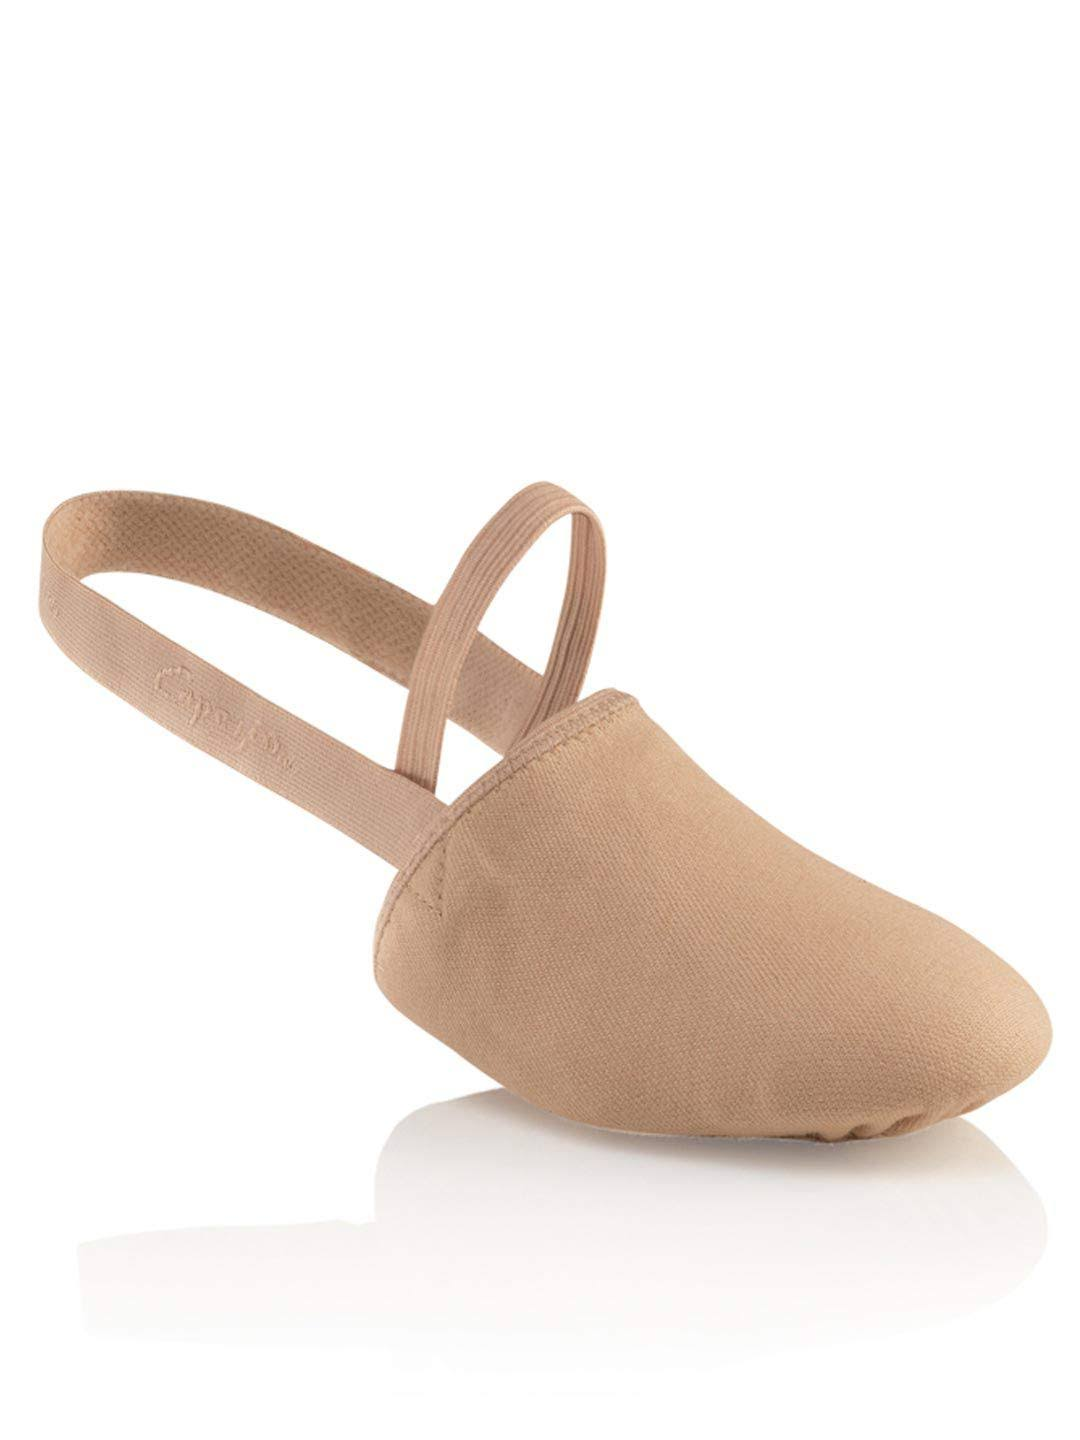 Capezio Women's Pirouette II Lyrical Modern Shoes - Nude, 2XLarge